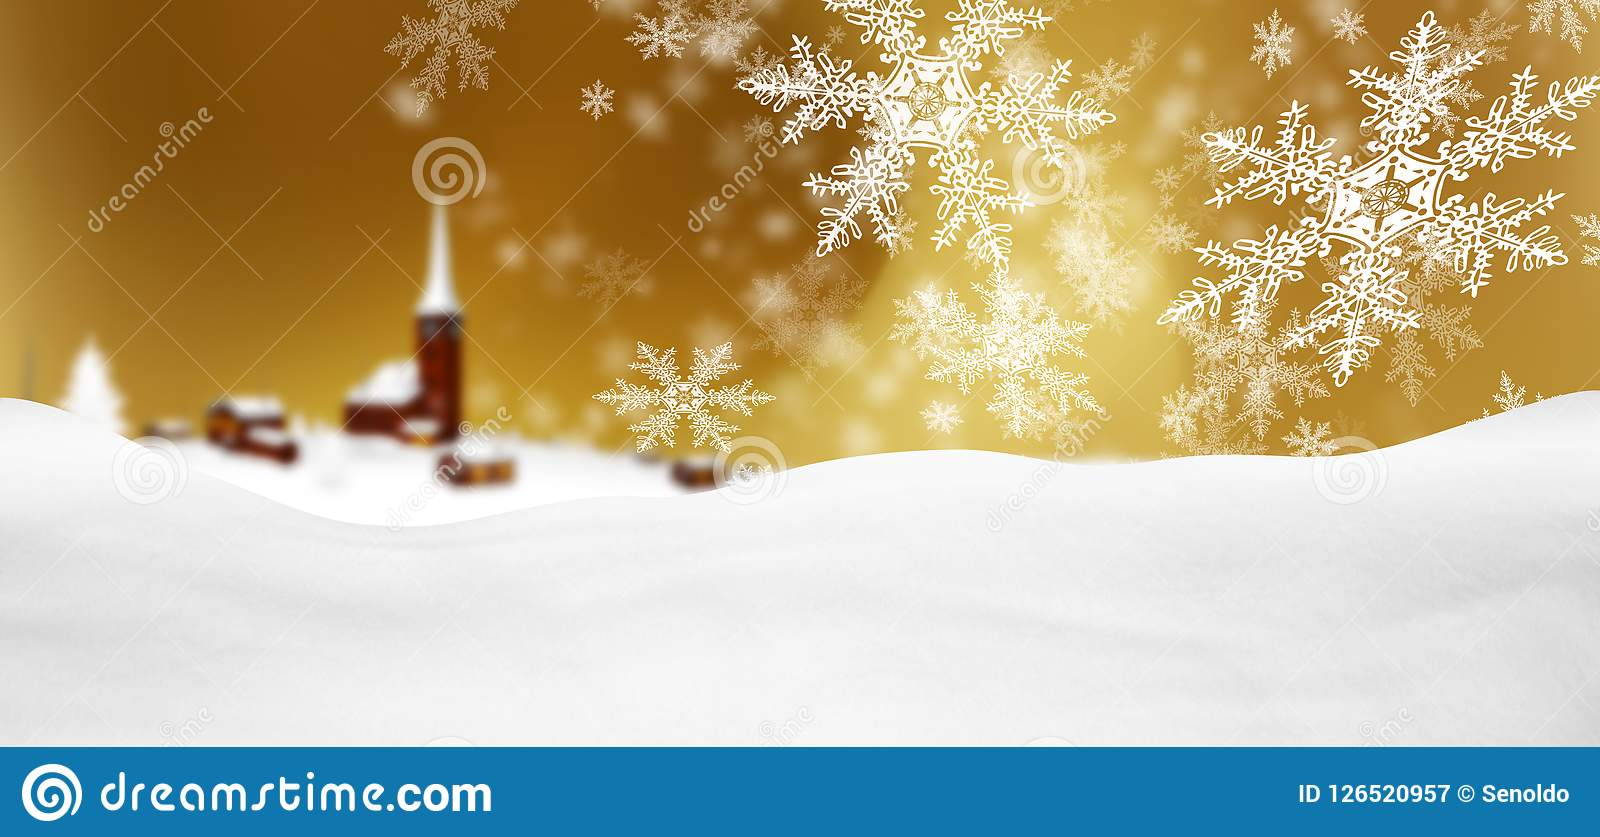 Abstract Golden Background Panorama Winter Landscape with Fallin